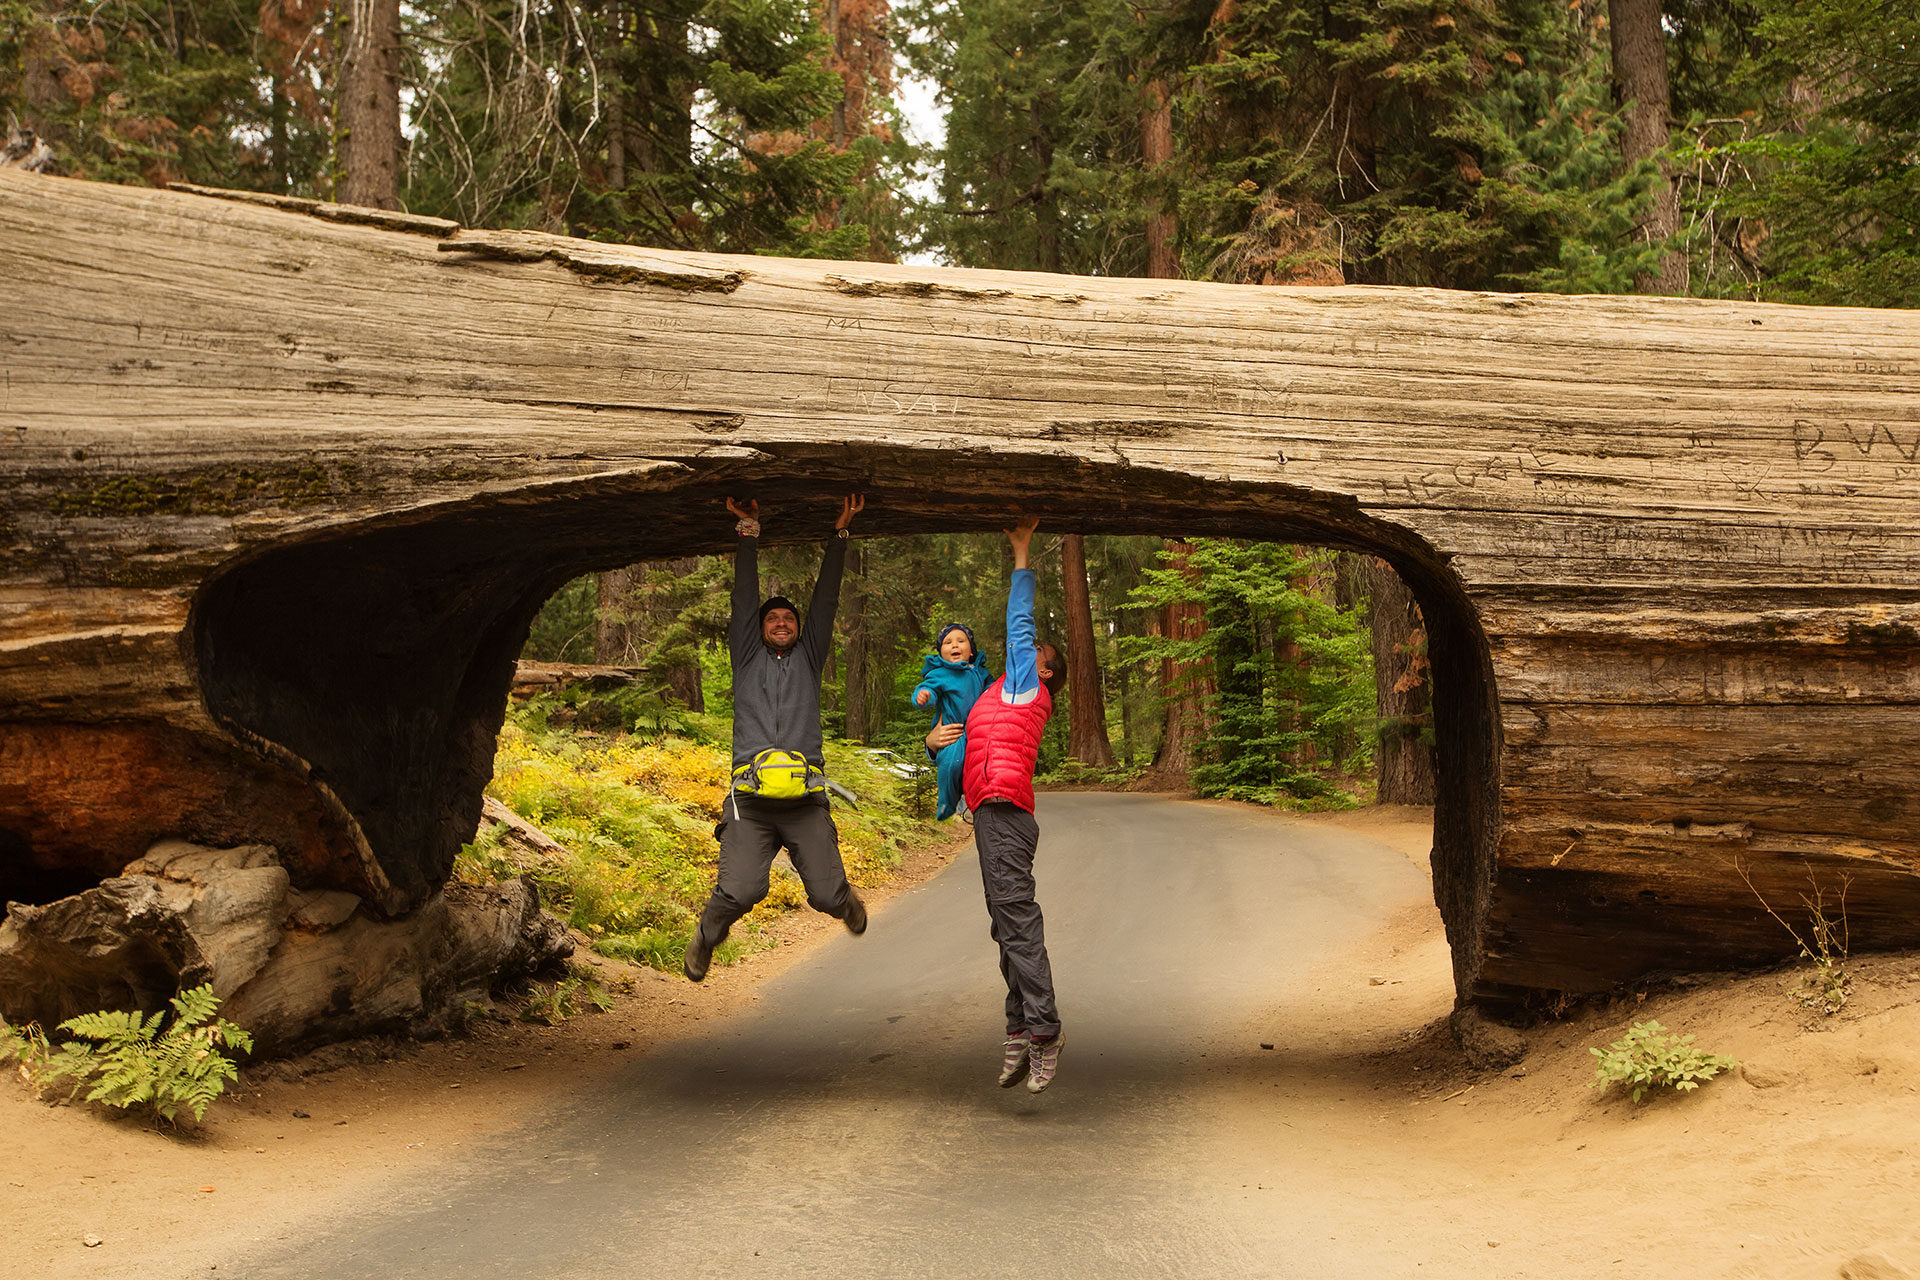 Family with infant visit Sequoia national park in California; Courtesy My Good Images/Shutterstock